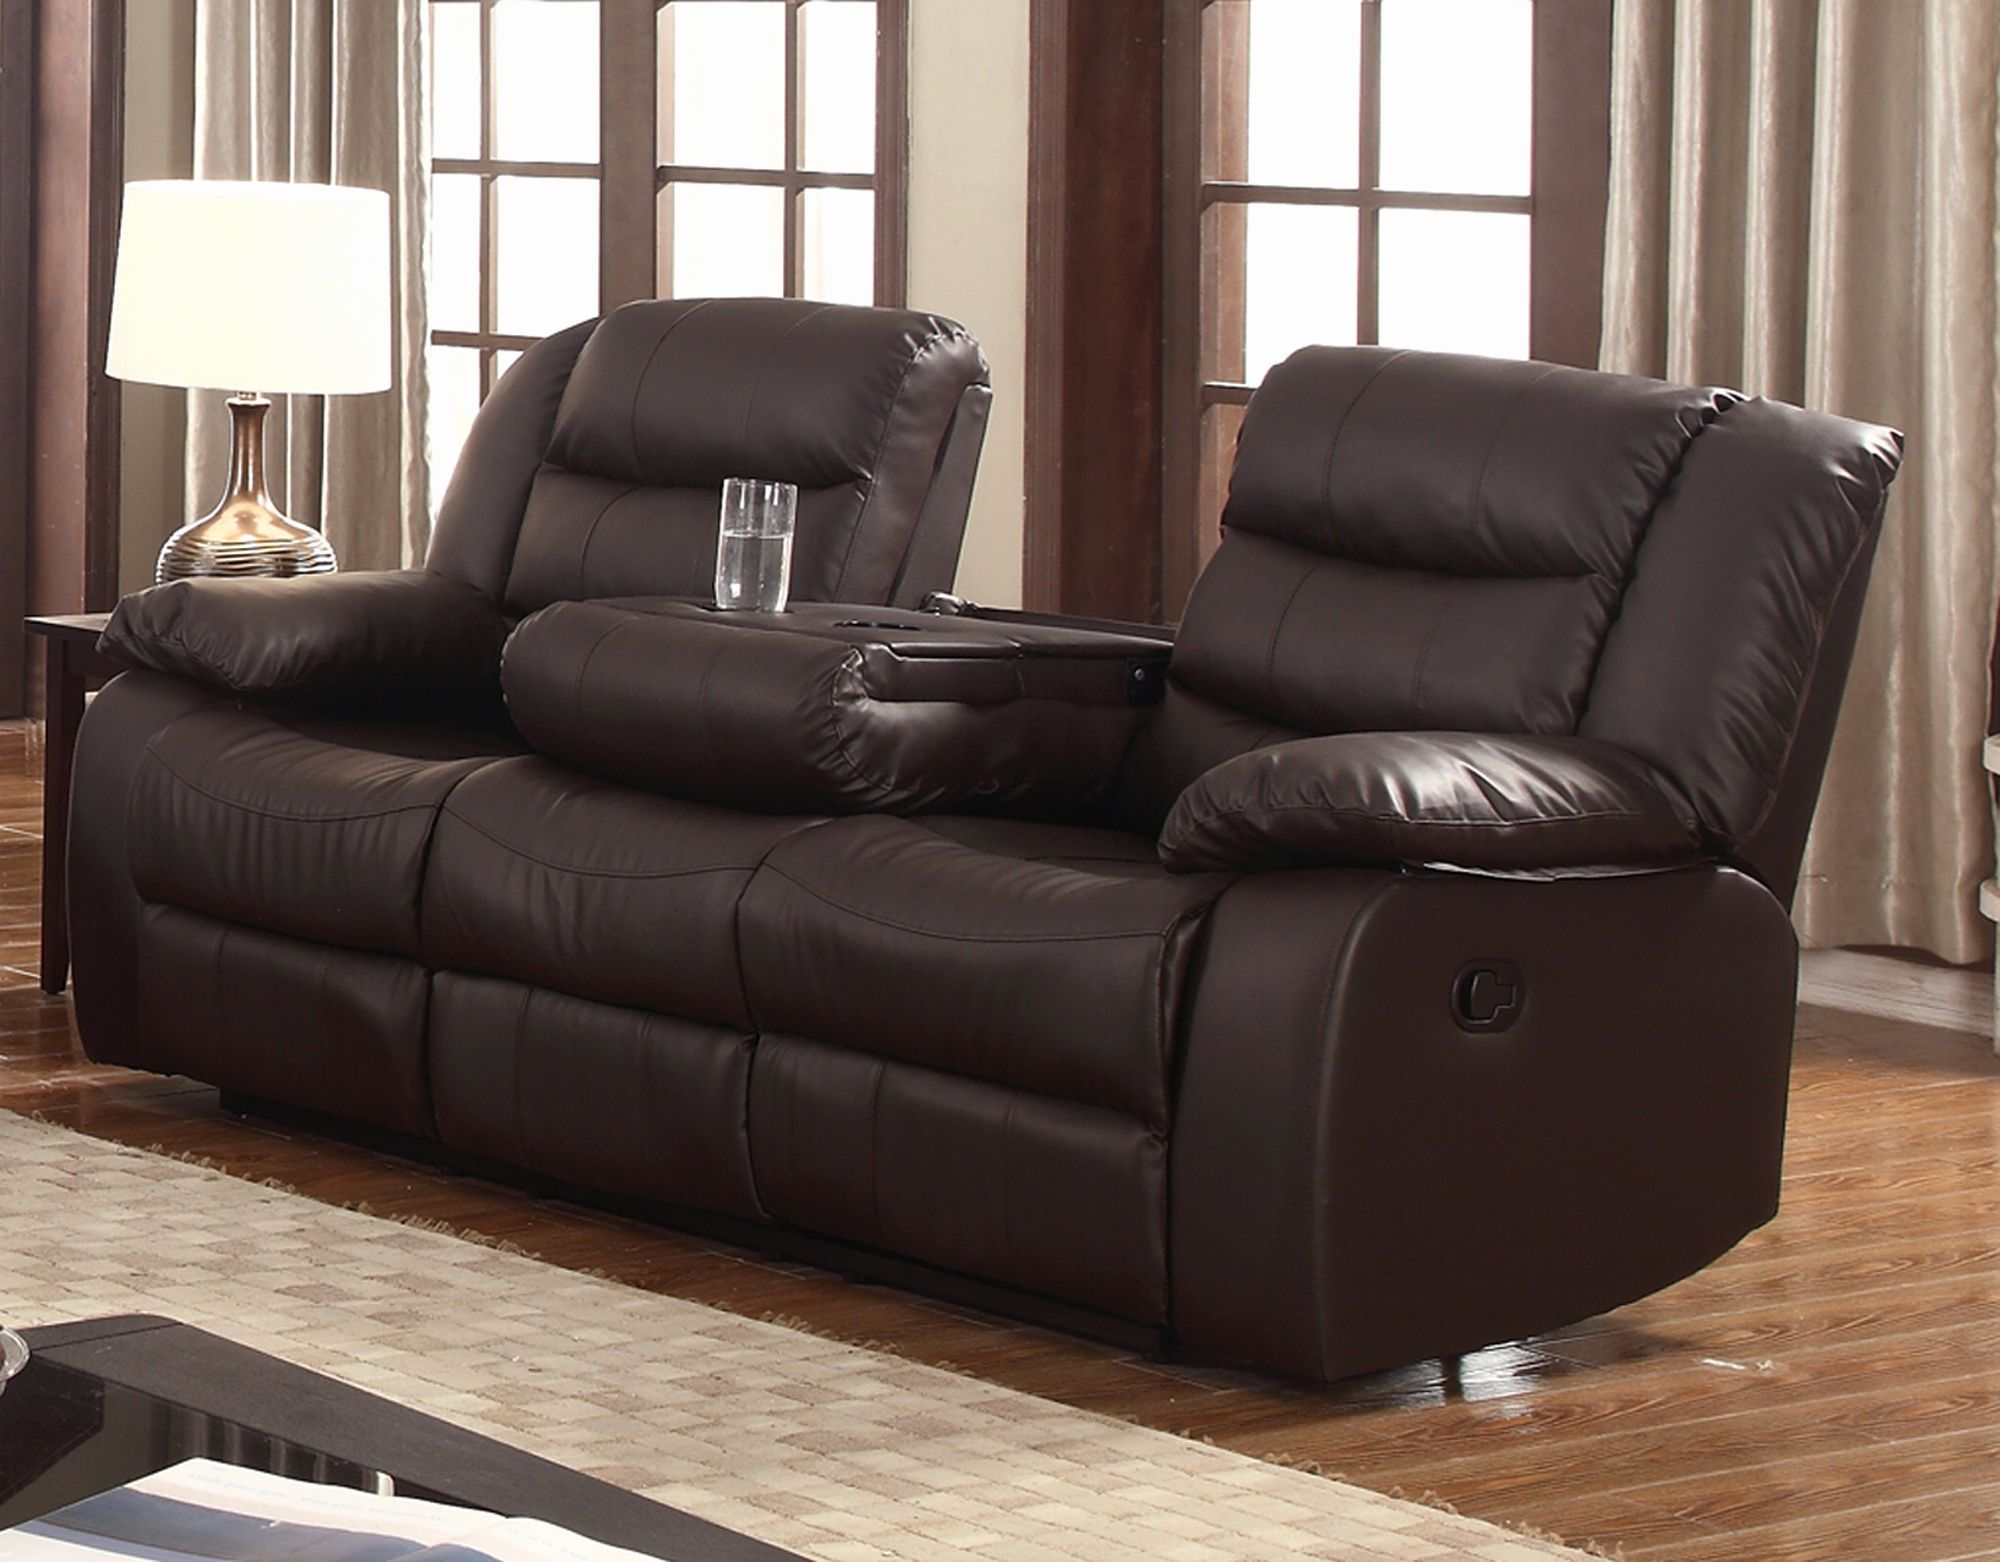 Great Beautiful Modern Leather Recliner Sofa Pictures Modern Leather Recliner Sofa  Beautiful Layla Dark Brown Faux Leather